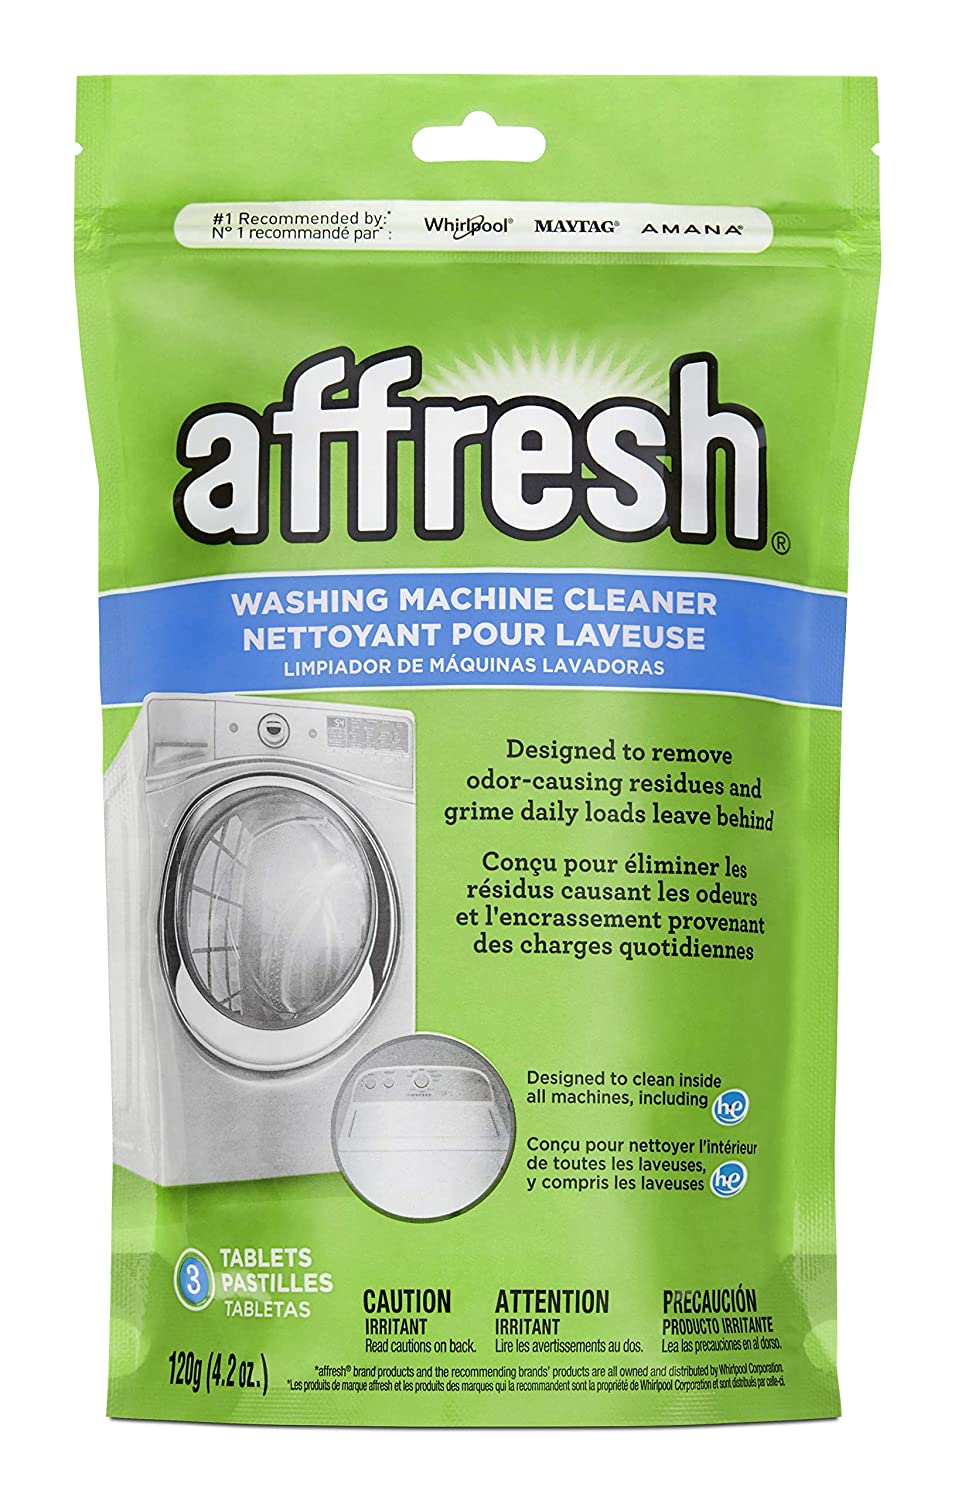 Amazon.com: Whirlpool - Affresh High Efficiency Washer Cleaner, 3 ...